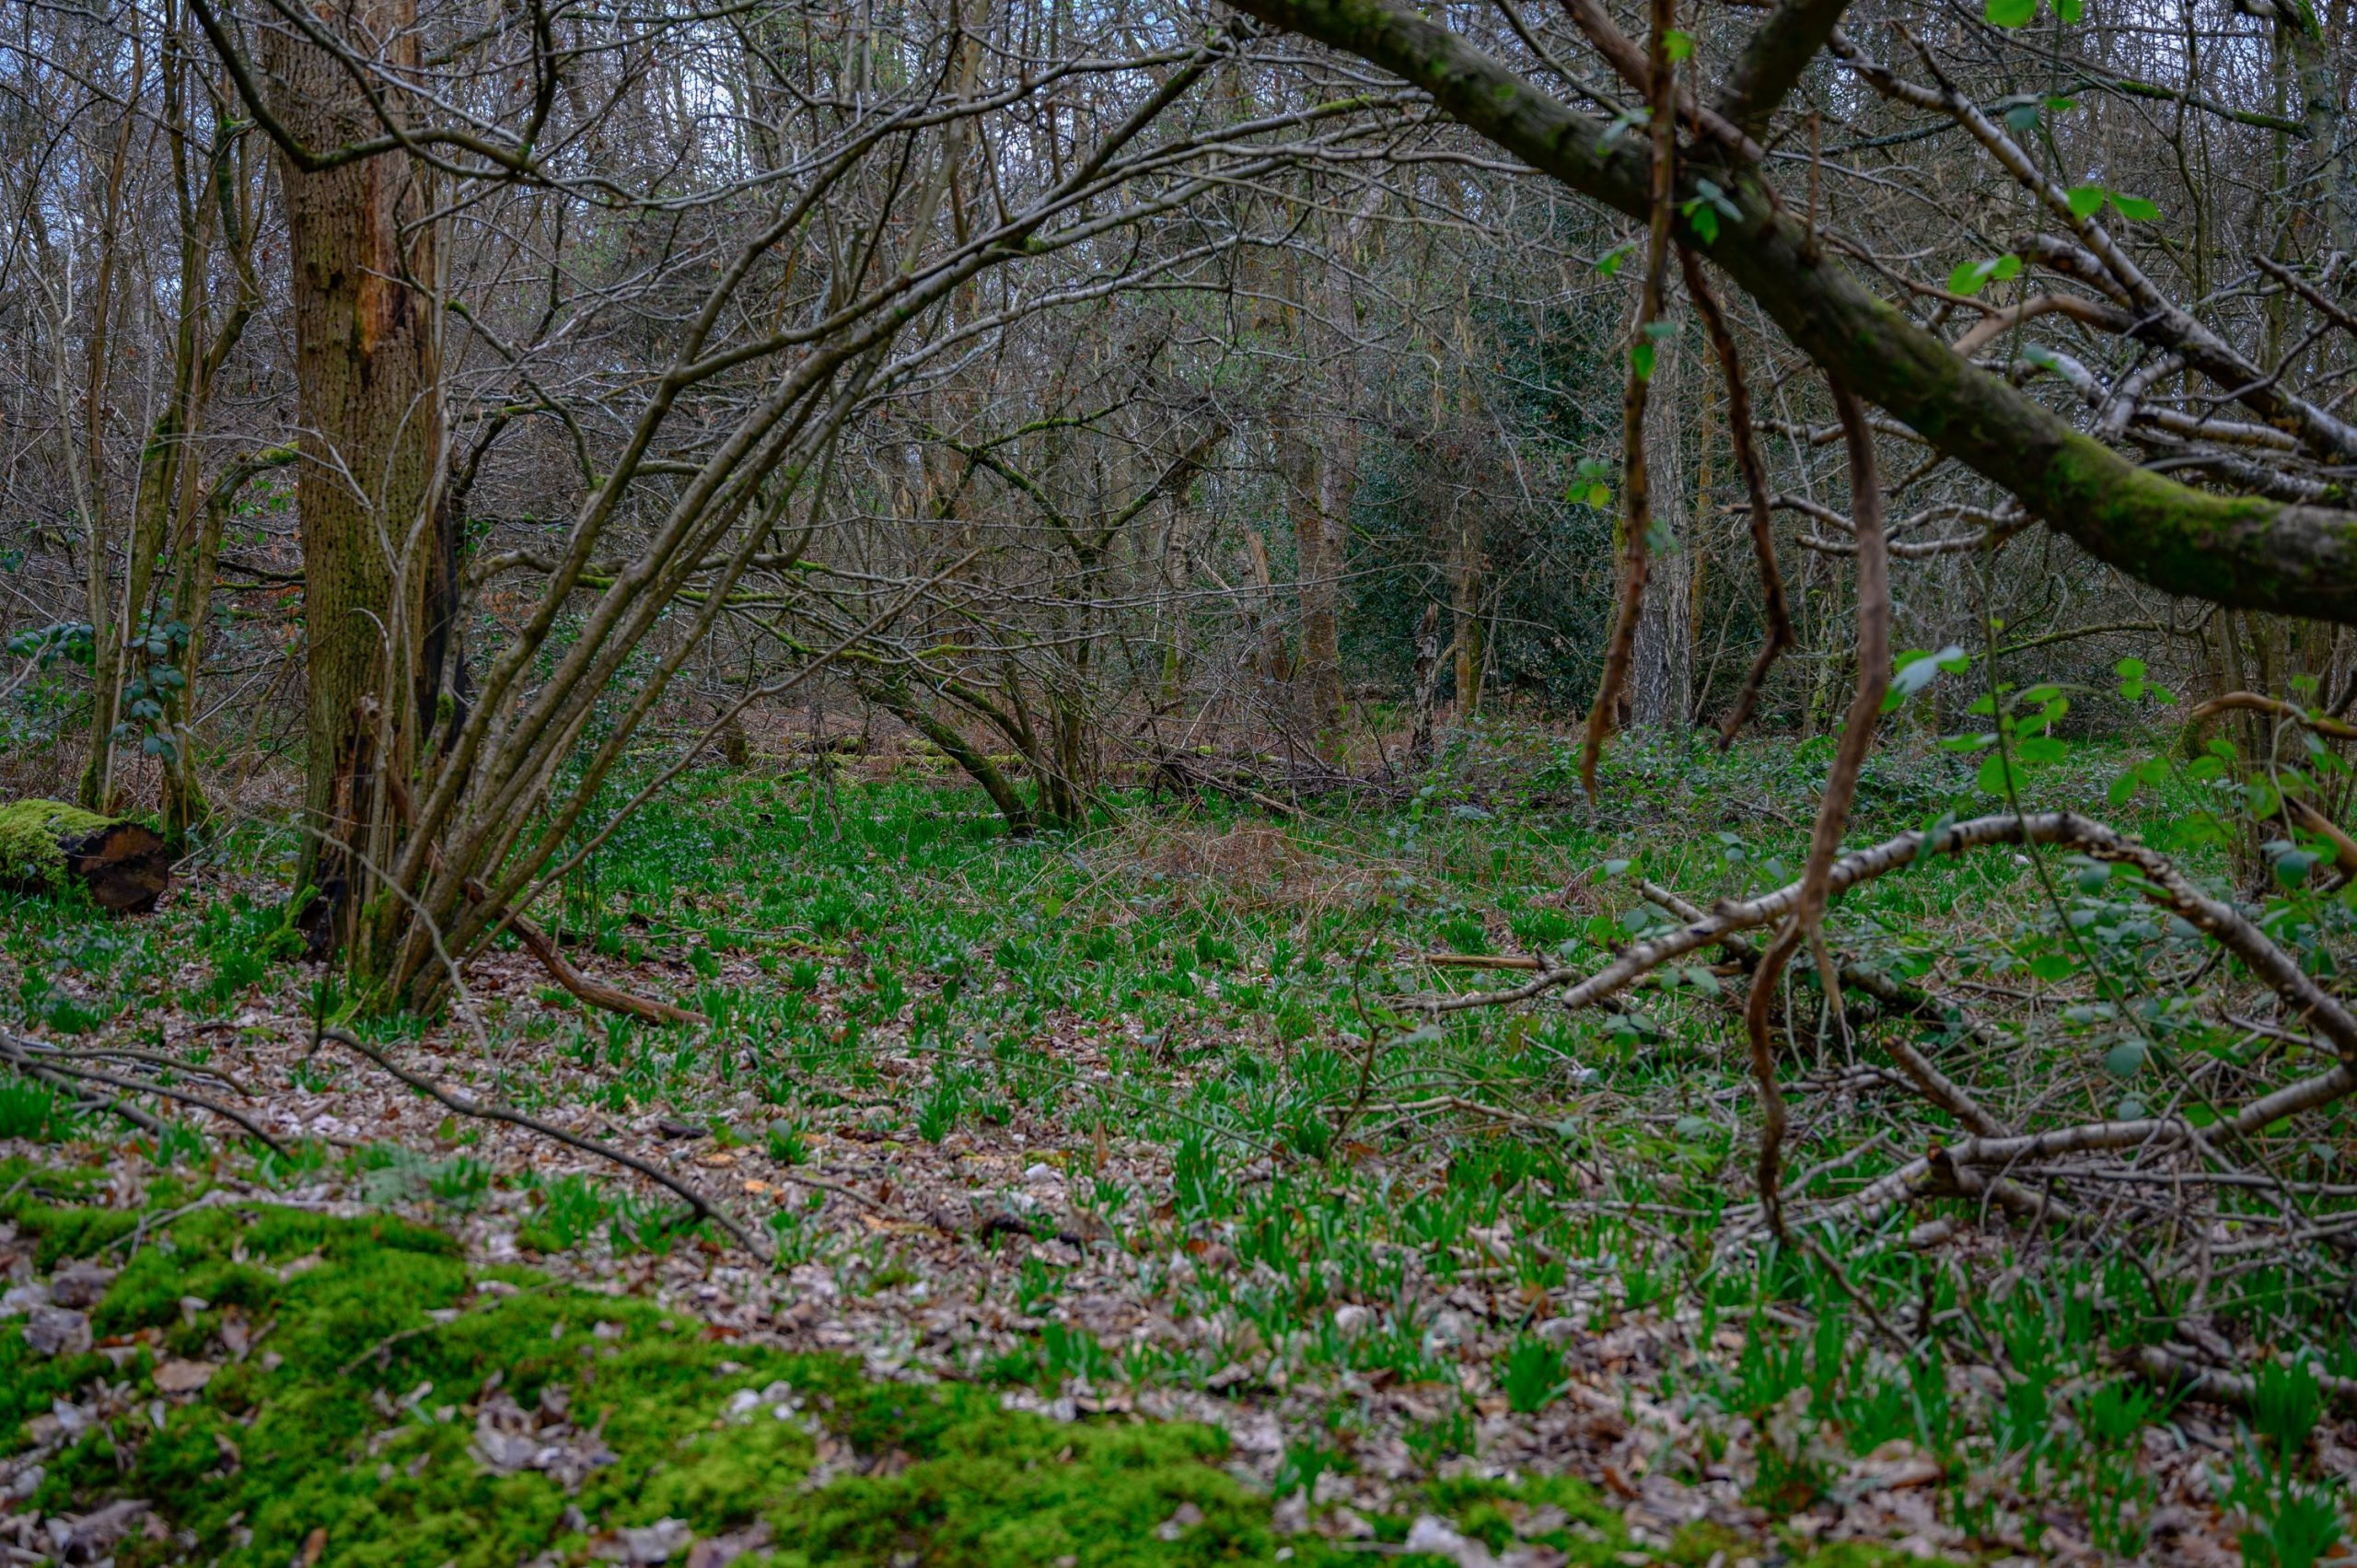 Restoration To Bring Ancient Whippendell Wood Back To Life Underway